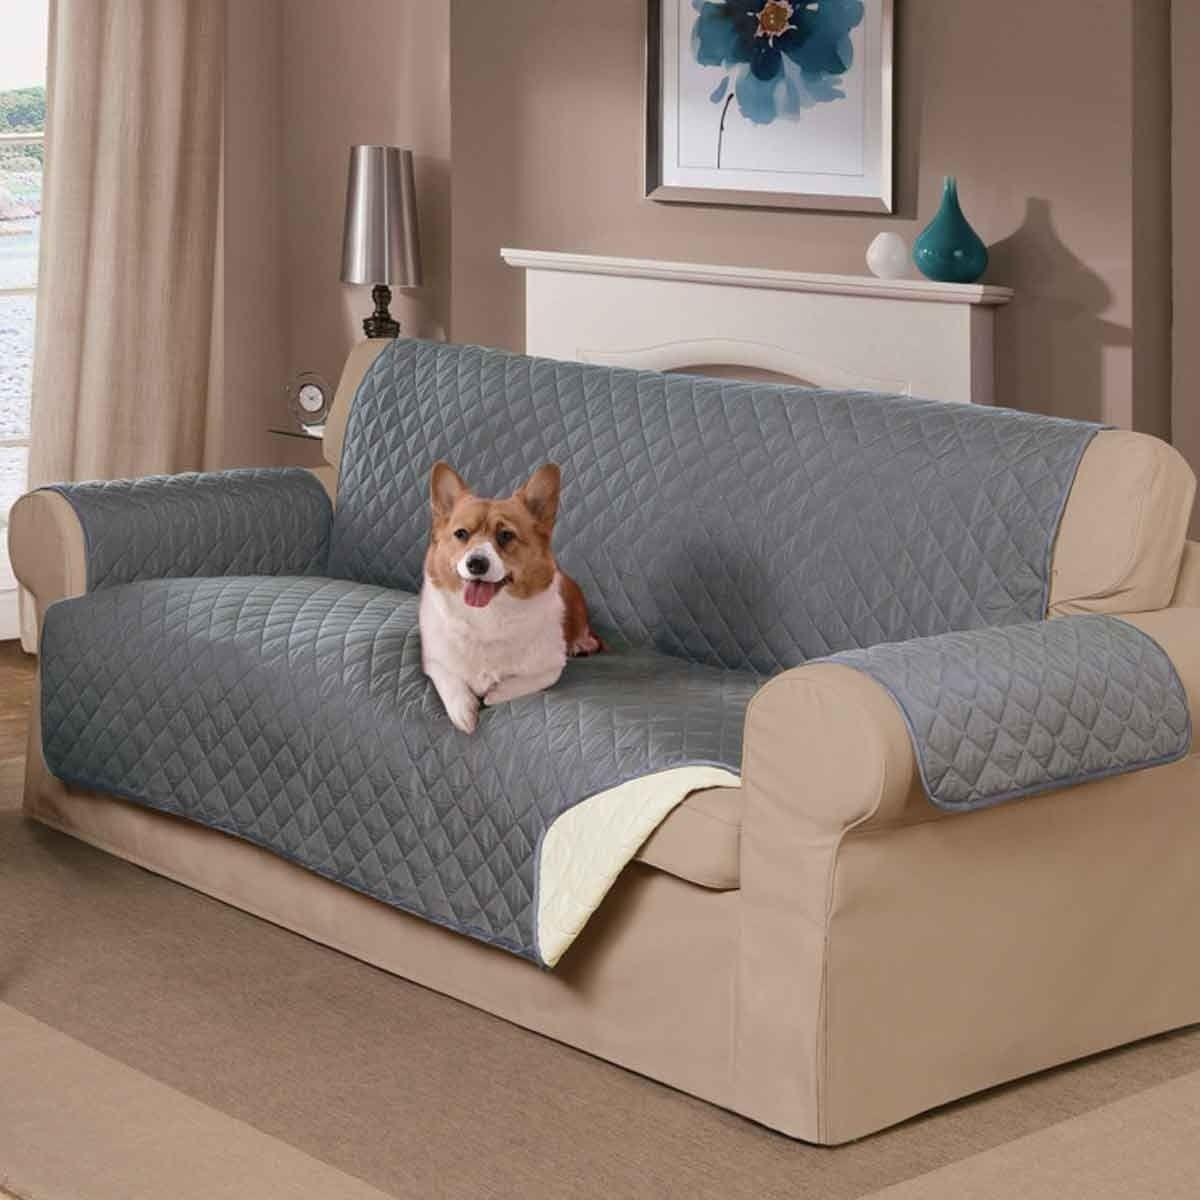 armless sectional sofa pet protector inexpensive leather sofas covers ikea friendly sure fit slipcovers